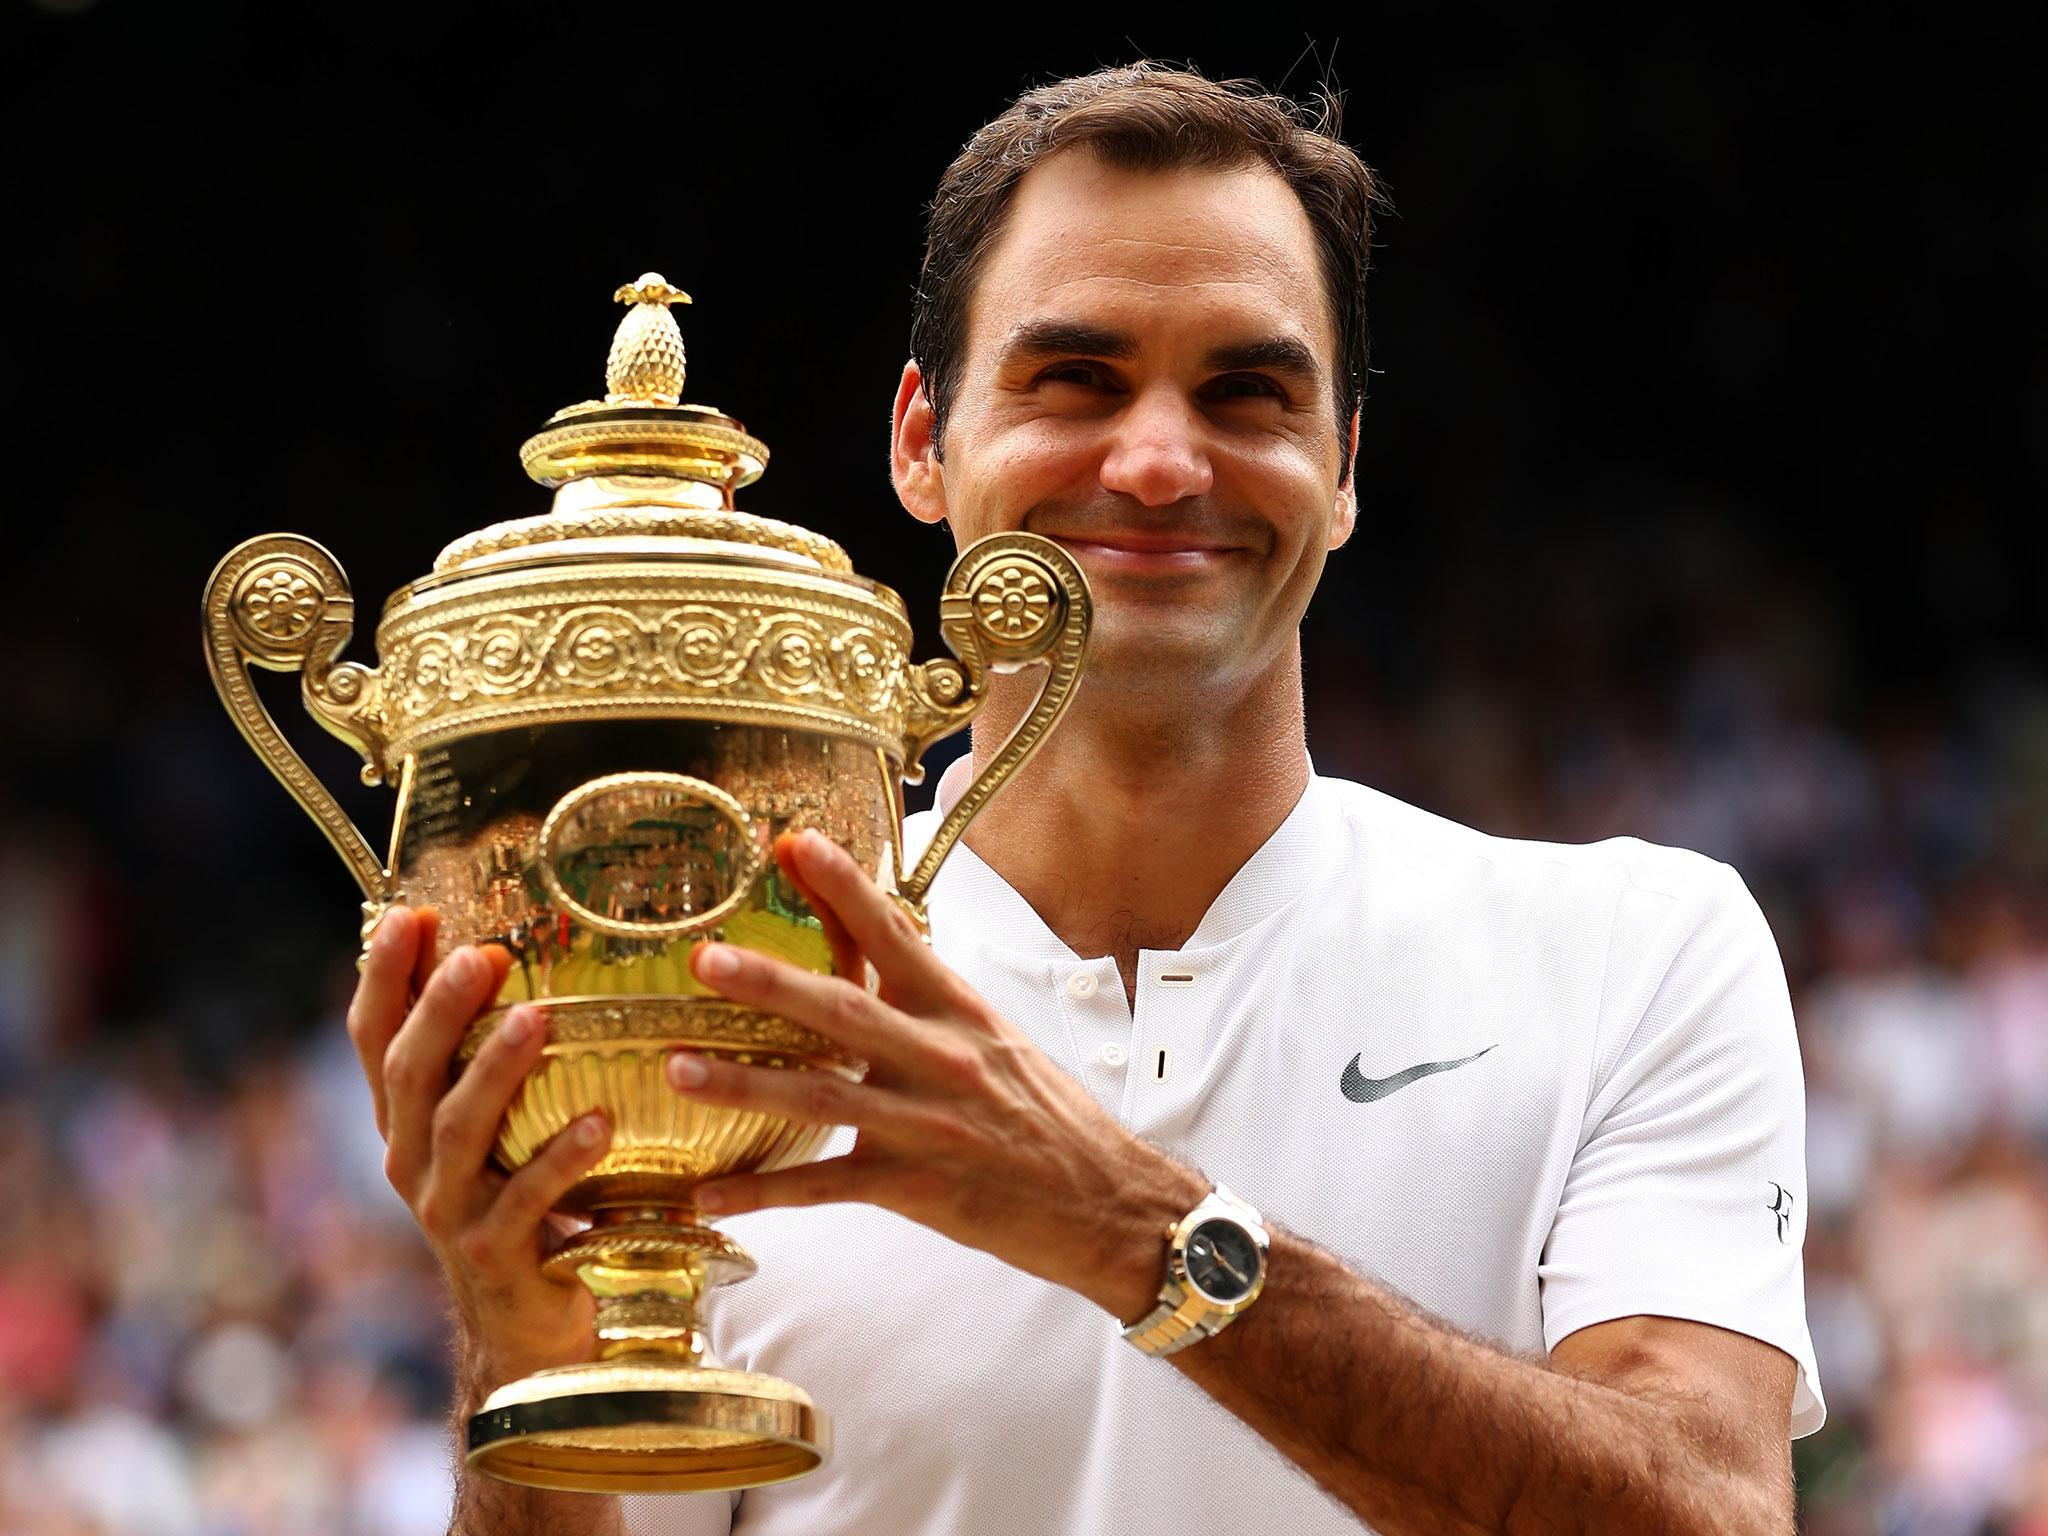 Wimbledon 2017 Roger Federer on why breaking records doesn t